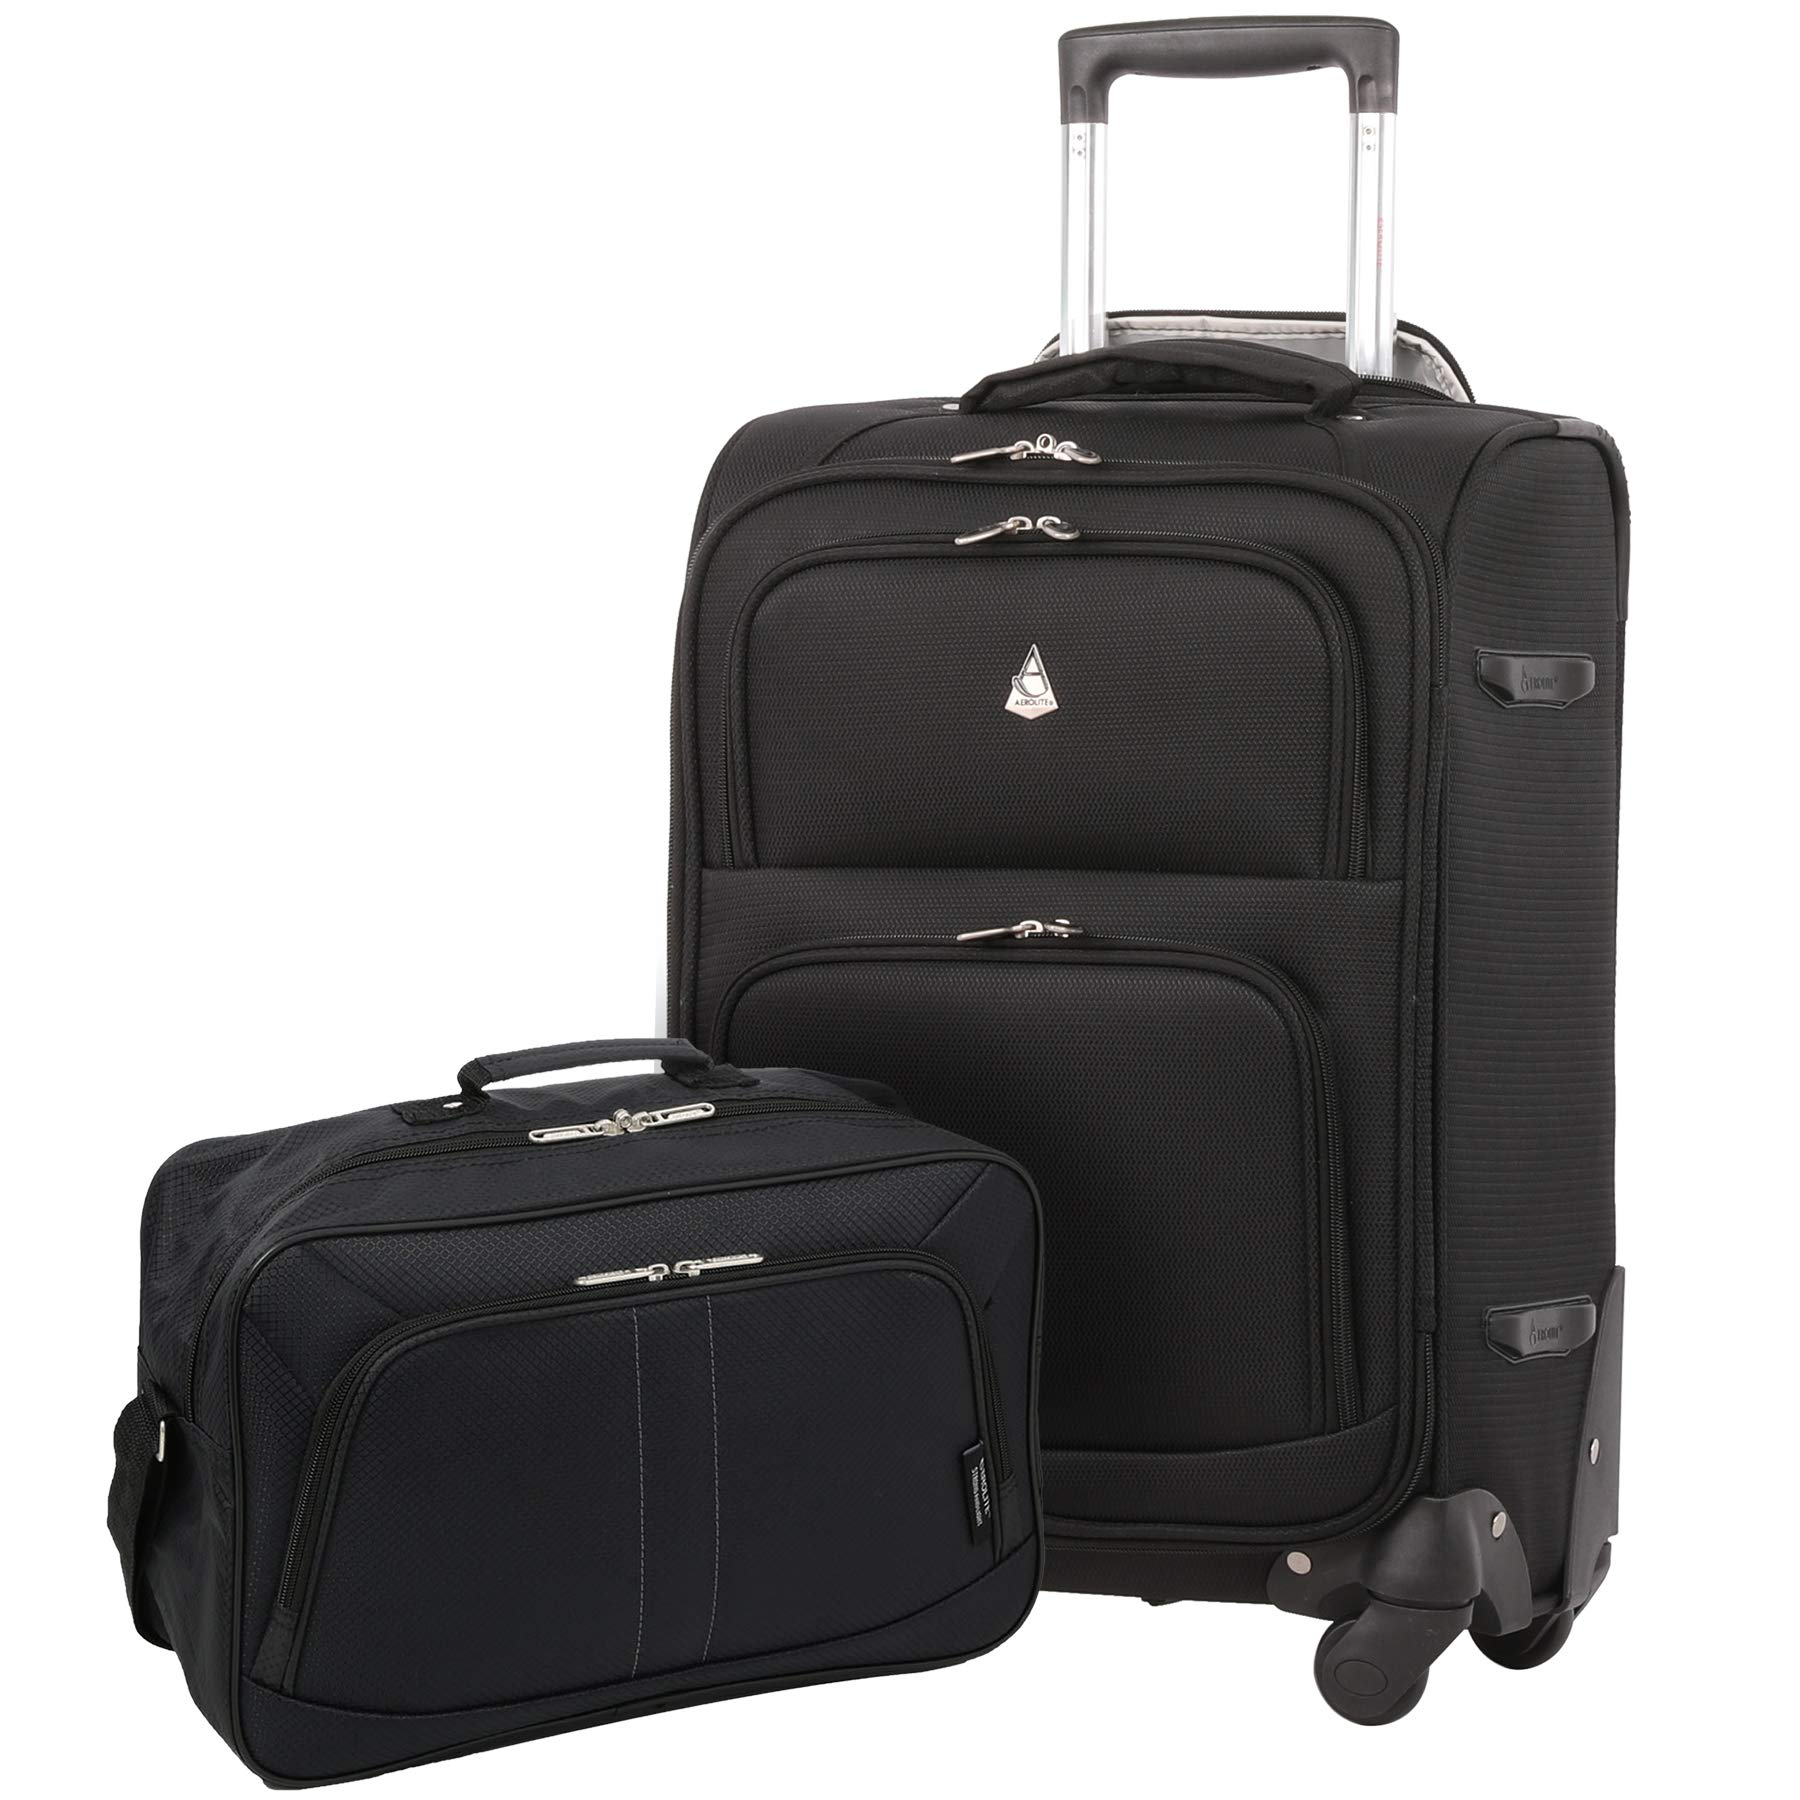 22x14x9 Luggage Carry On Away Travel Suitcase Spinner Rolling Cabin Wheeled Bag